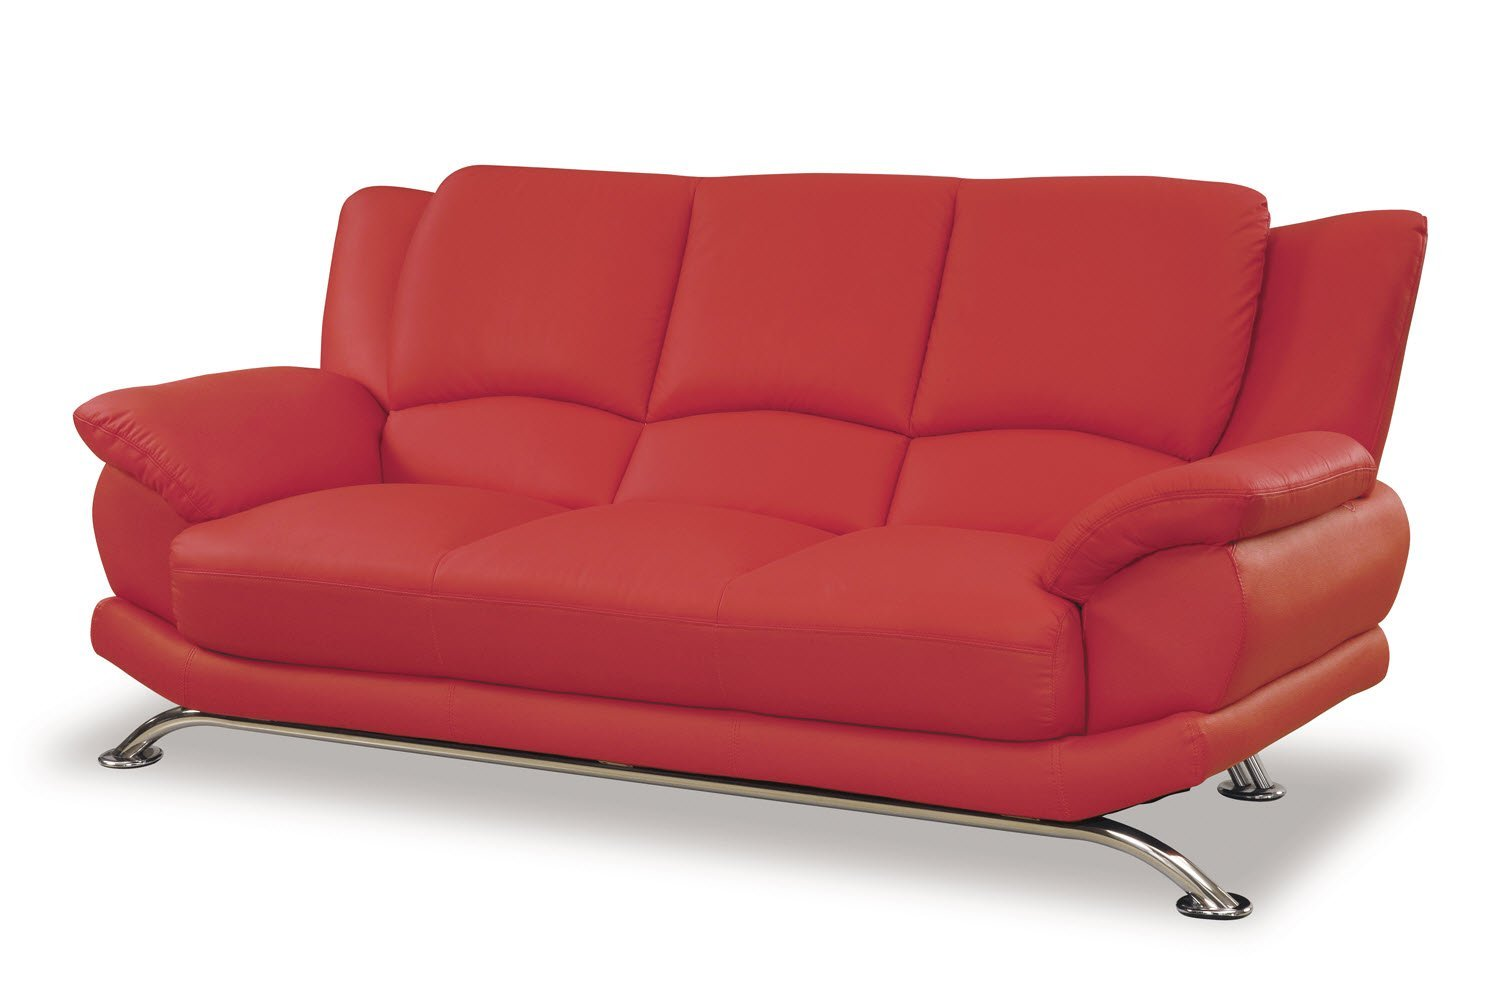 Global Furniture Rogers Collection Bonded Leather Matching Sofa, Red with Chrome Legs